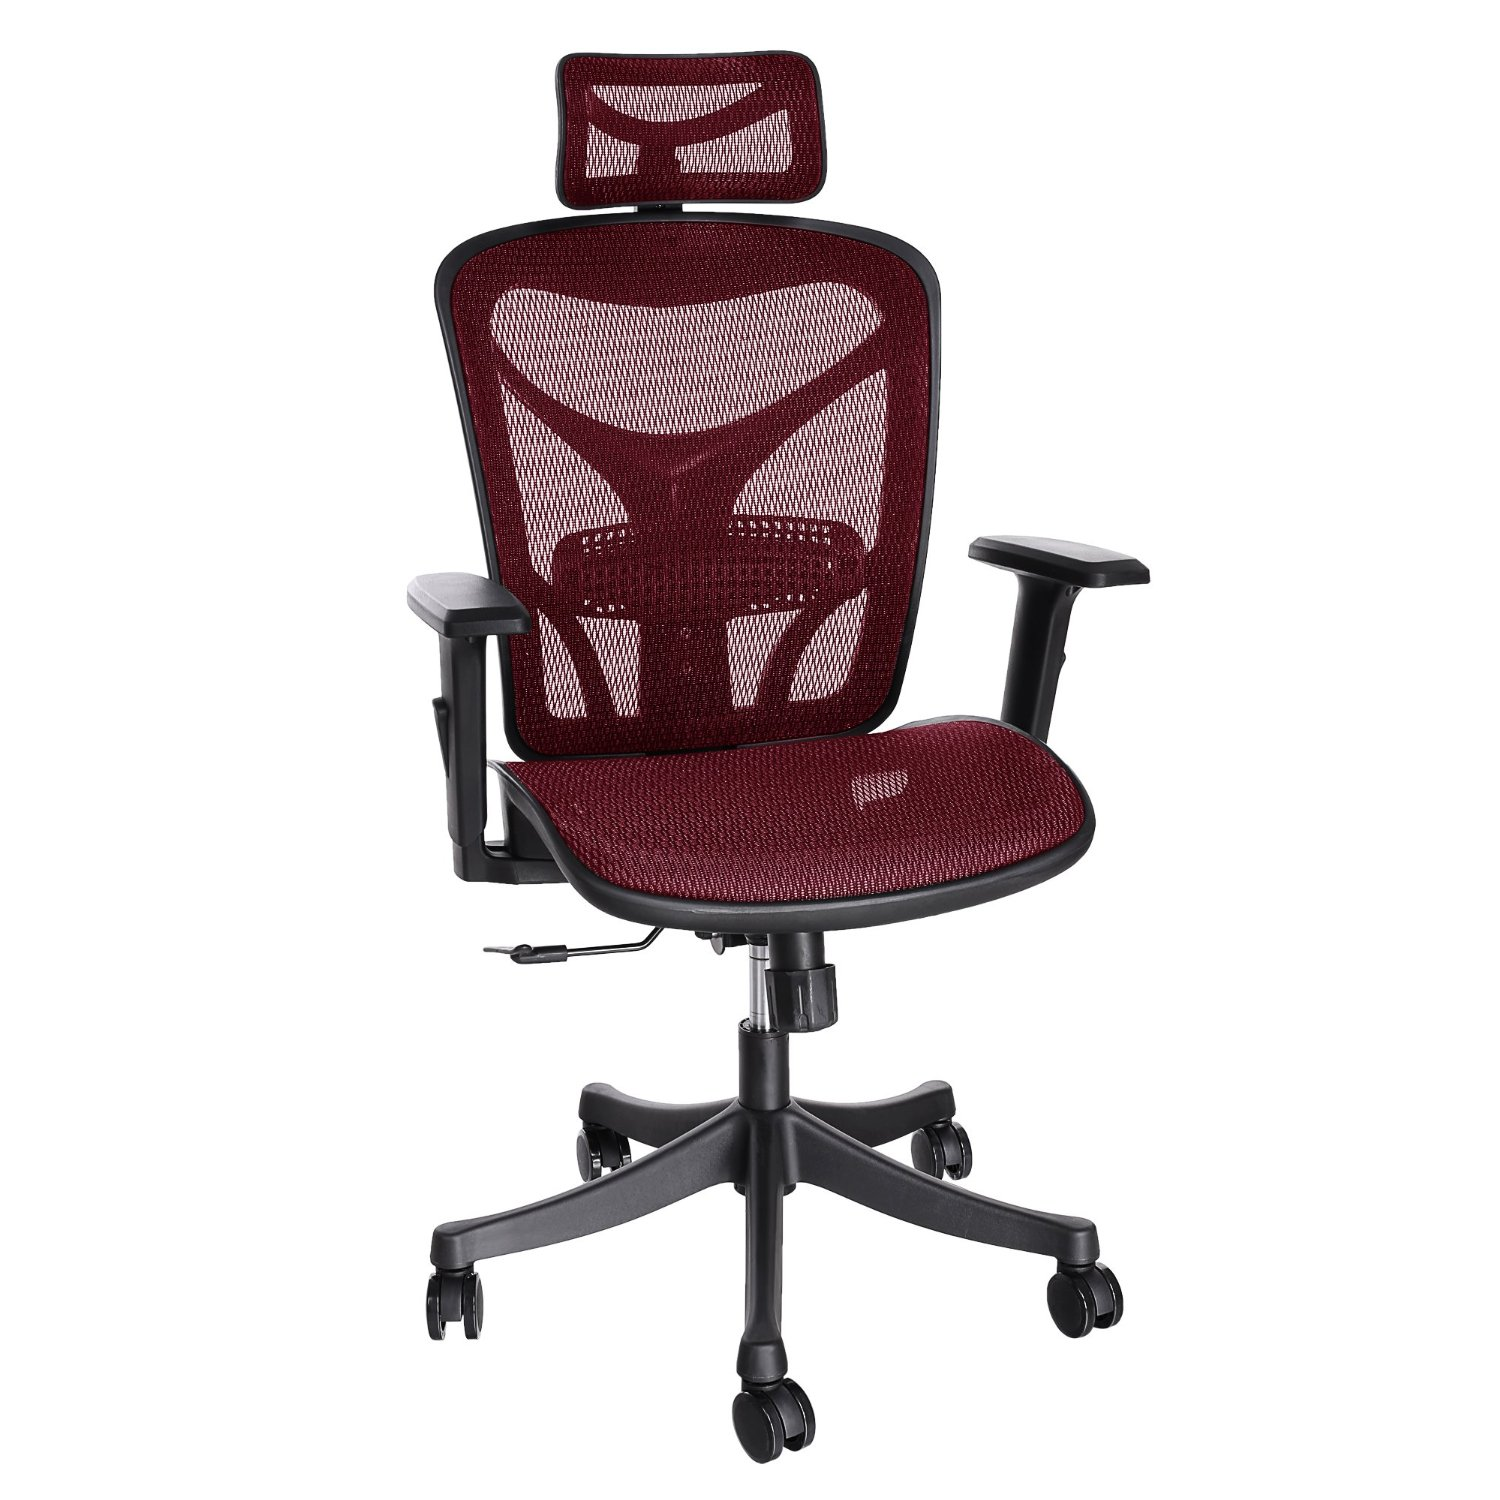 Best Back Support Chairs for Home fice